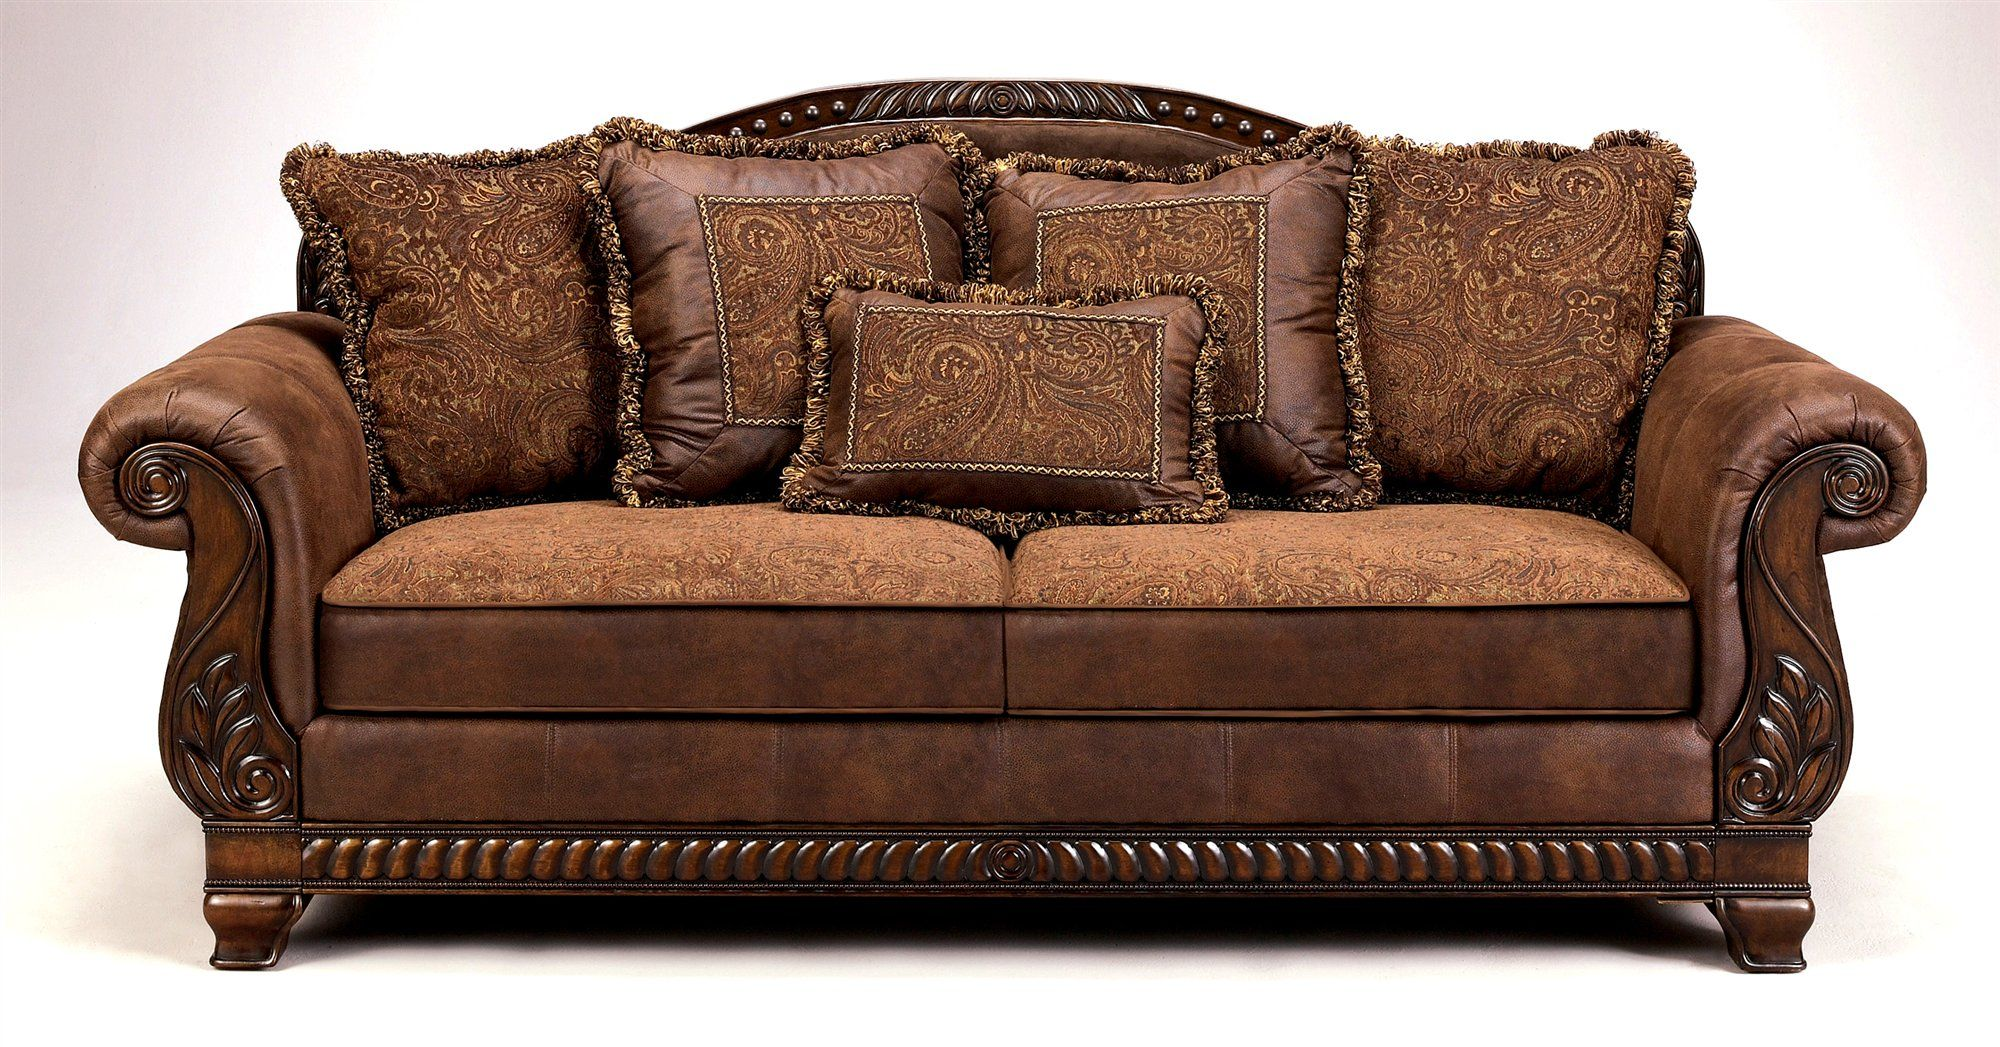 Buy Low Price Ivgstores Furniture Faux Leather Tapestry Sofa Ash 99527 Furniture Decor